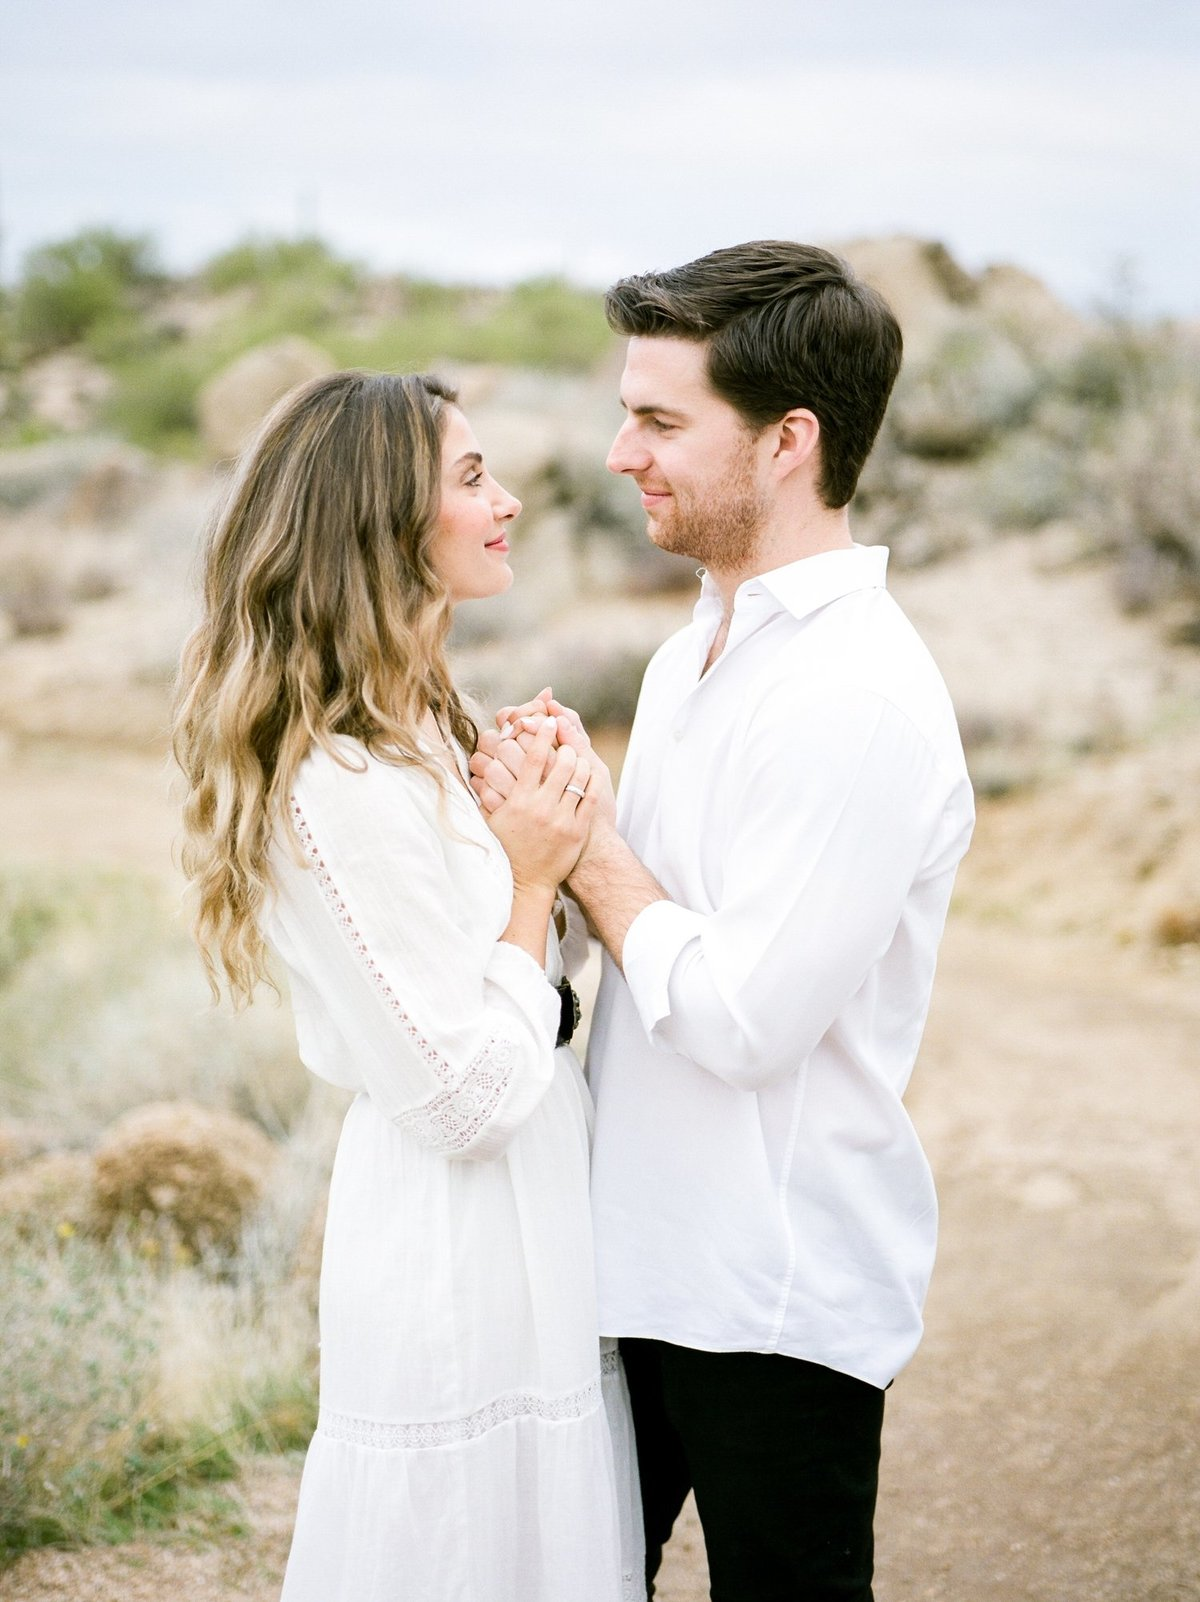 scottsdale-arizona-wedding-photographer-rachael-koscica_1077